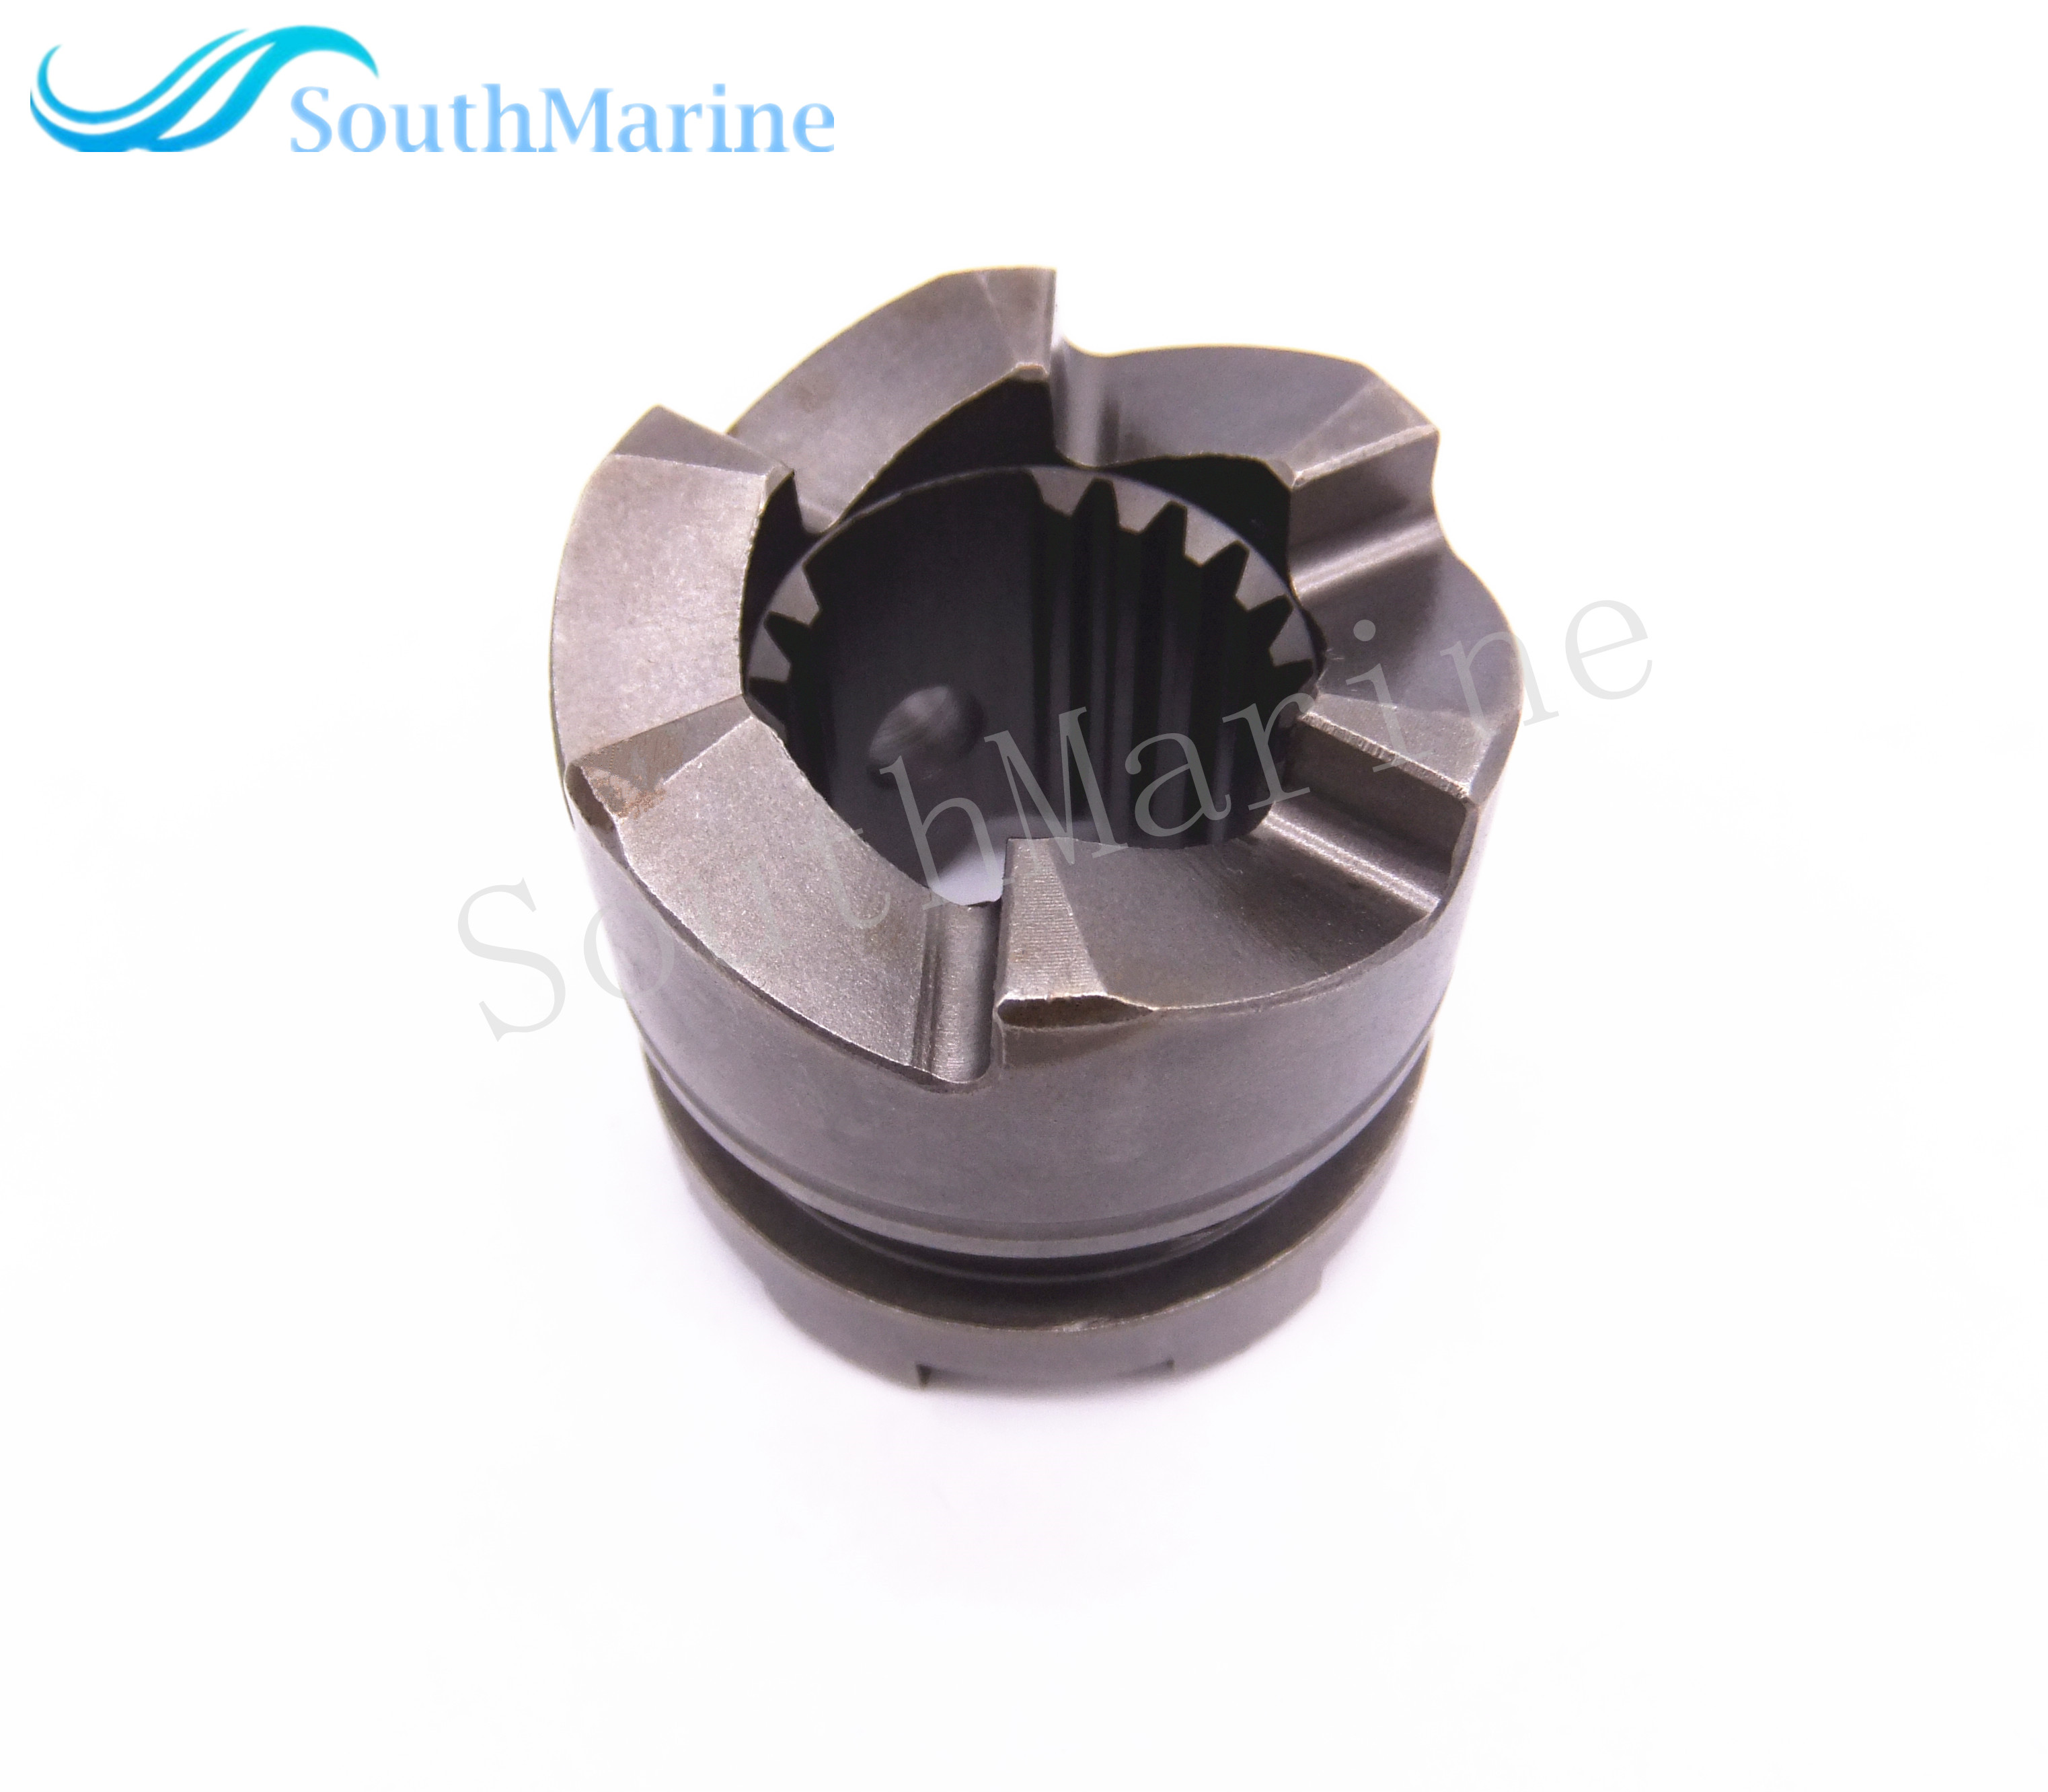 Boat Motor T40-04050003 Clutch Dog for Parsun Outboard Engine 2-Stroke T40 Free Shipping electric outboard engine fishing boat propeller with outboard engine 12v 684w1750 rotationl speed dc motor